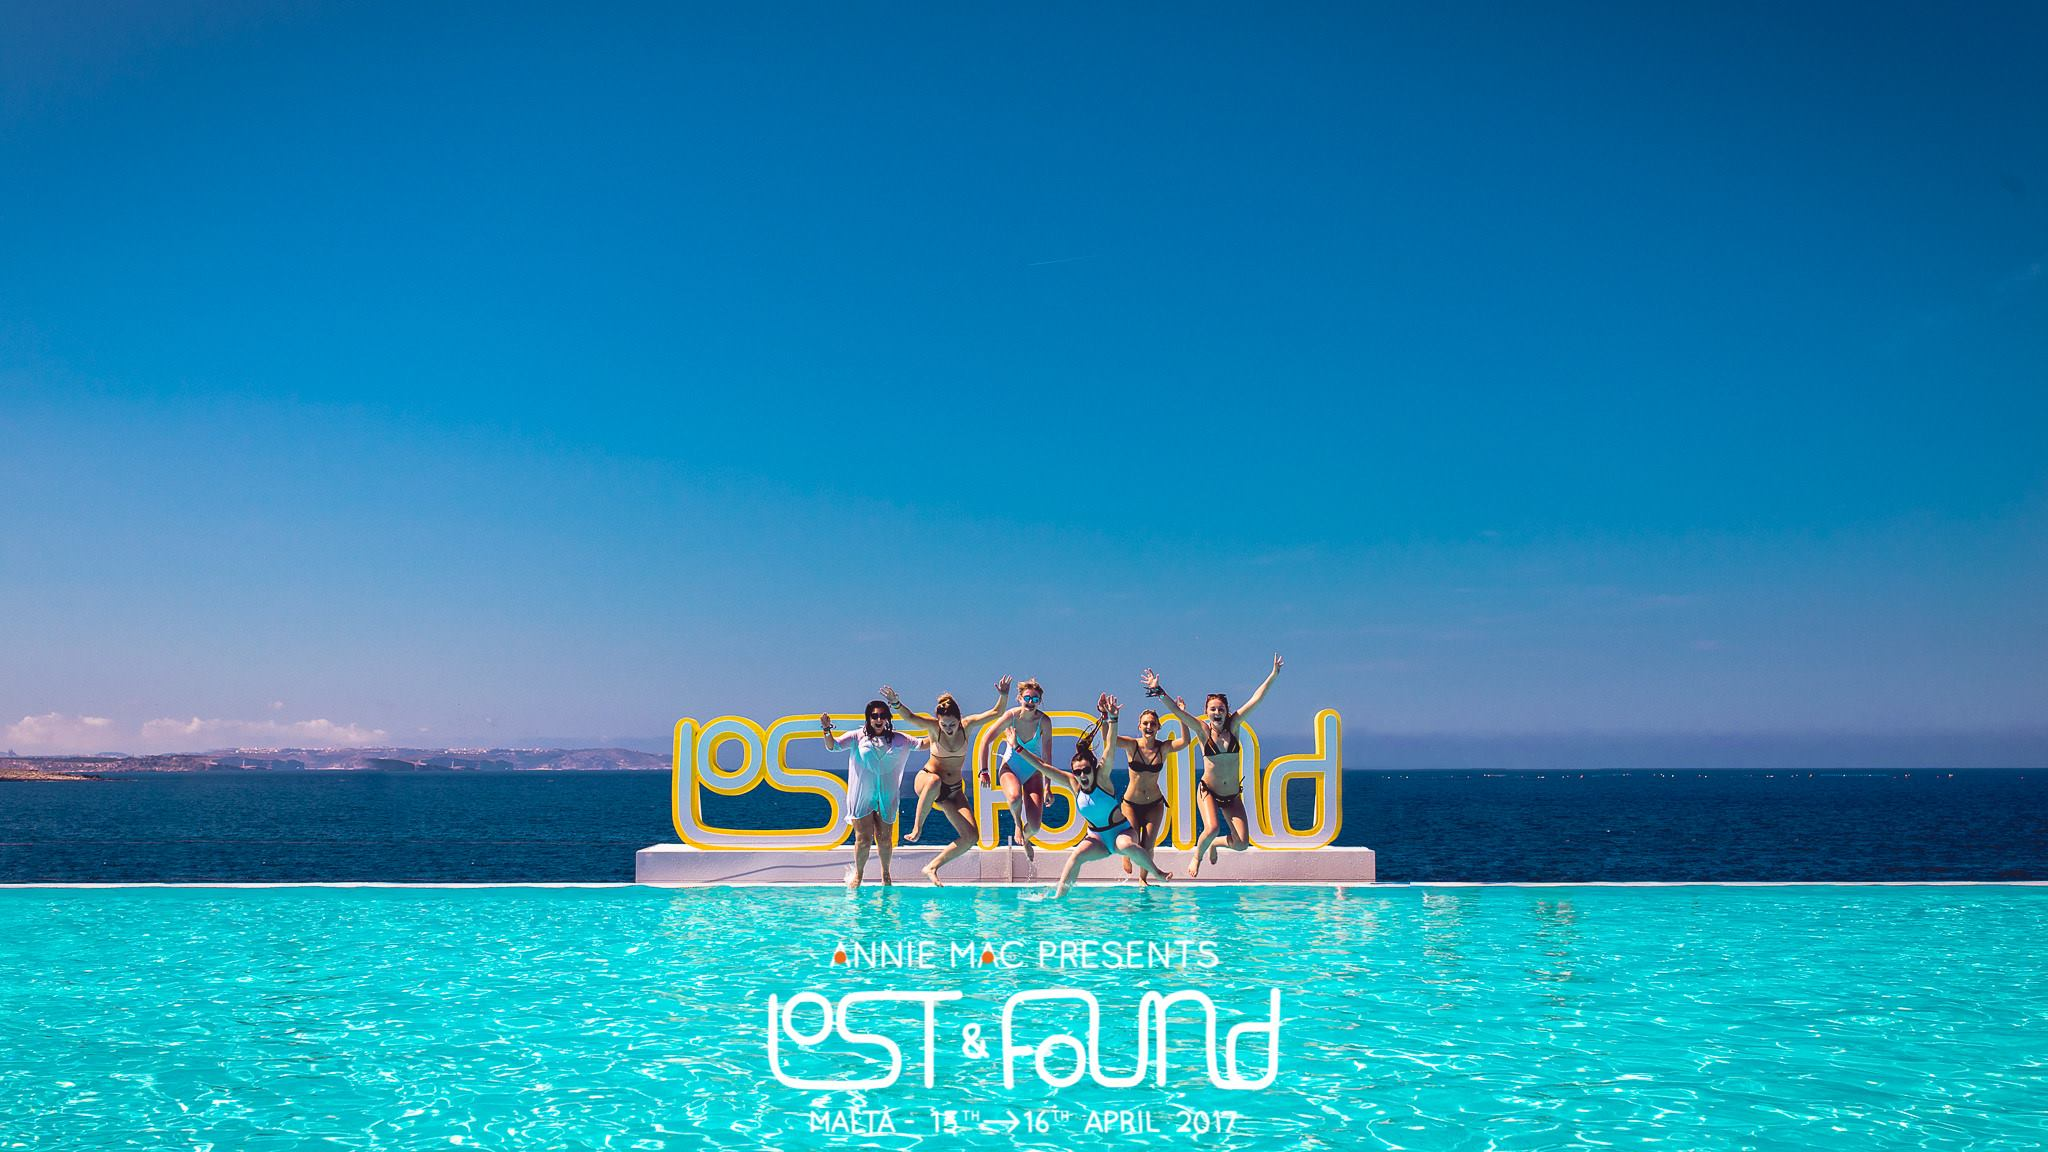 lost and found festival 2017 malta cafe del mar first day